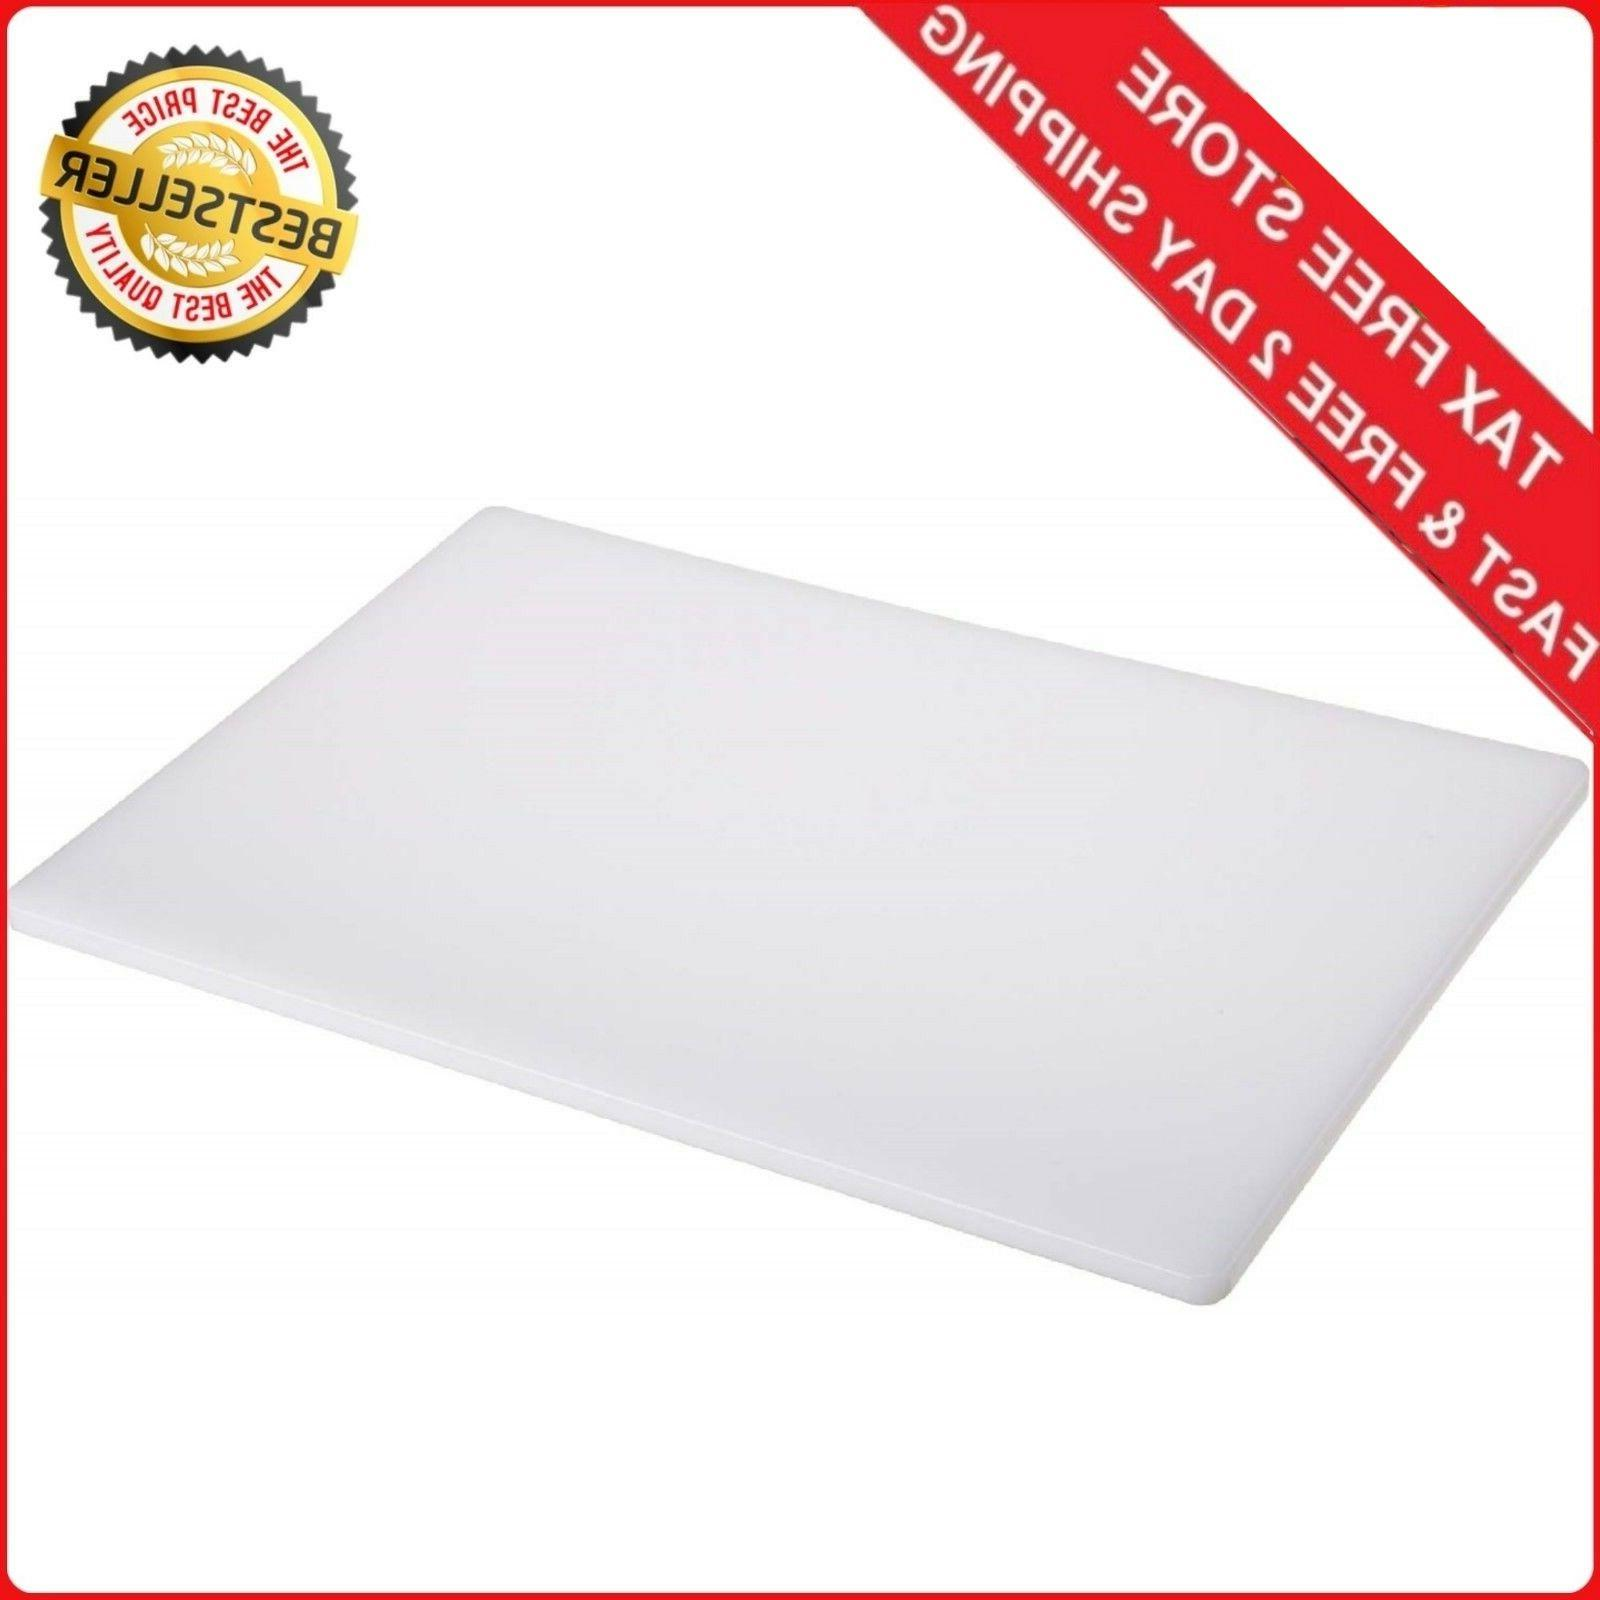 Large 18 x 12 Commercial Plastic Cutting Board NSF NEW